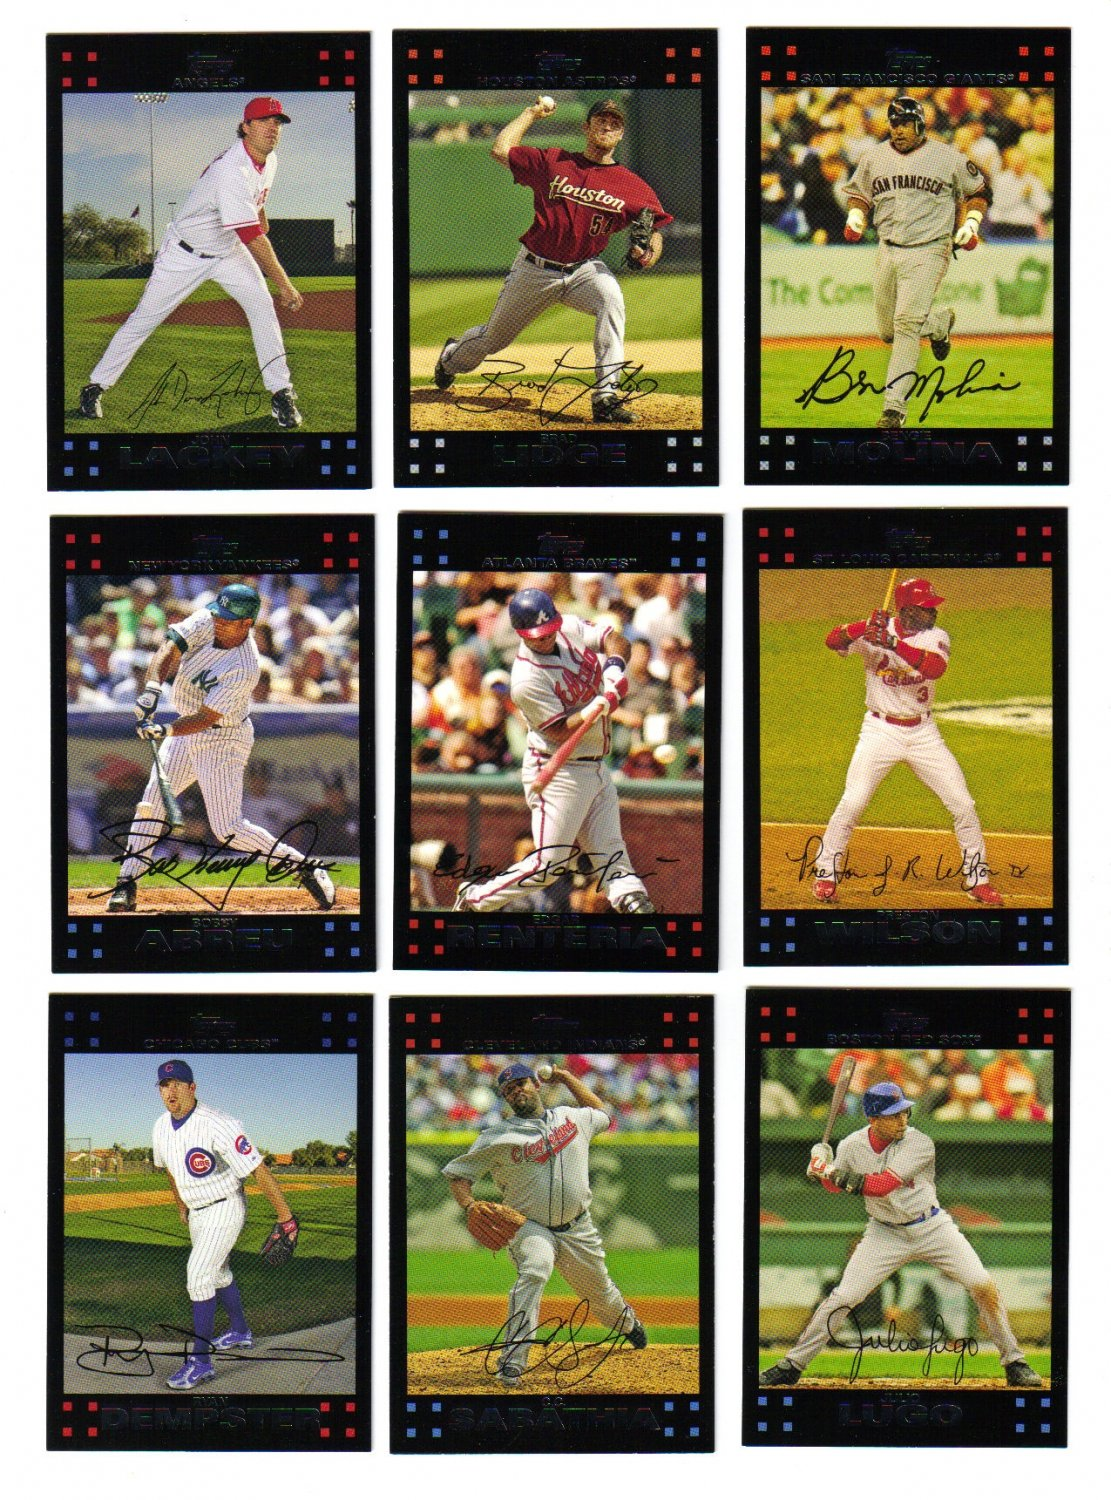 2007 Topps Red Backs U-Pick lot of 10 cards